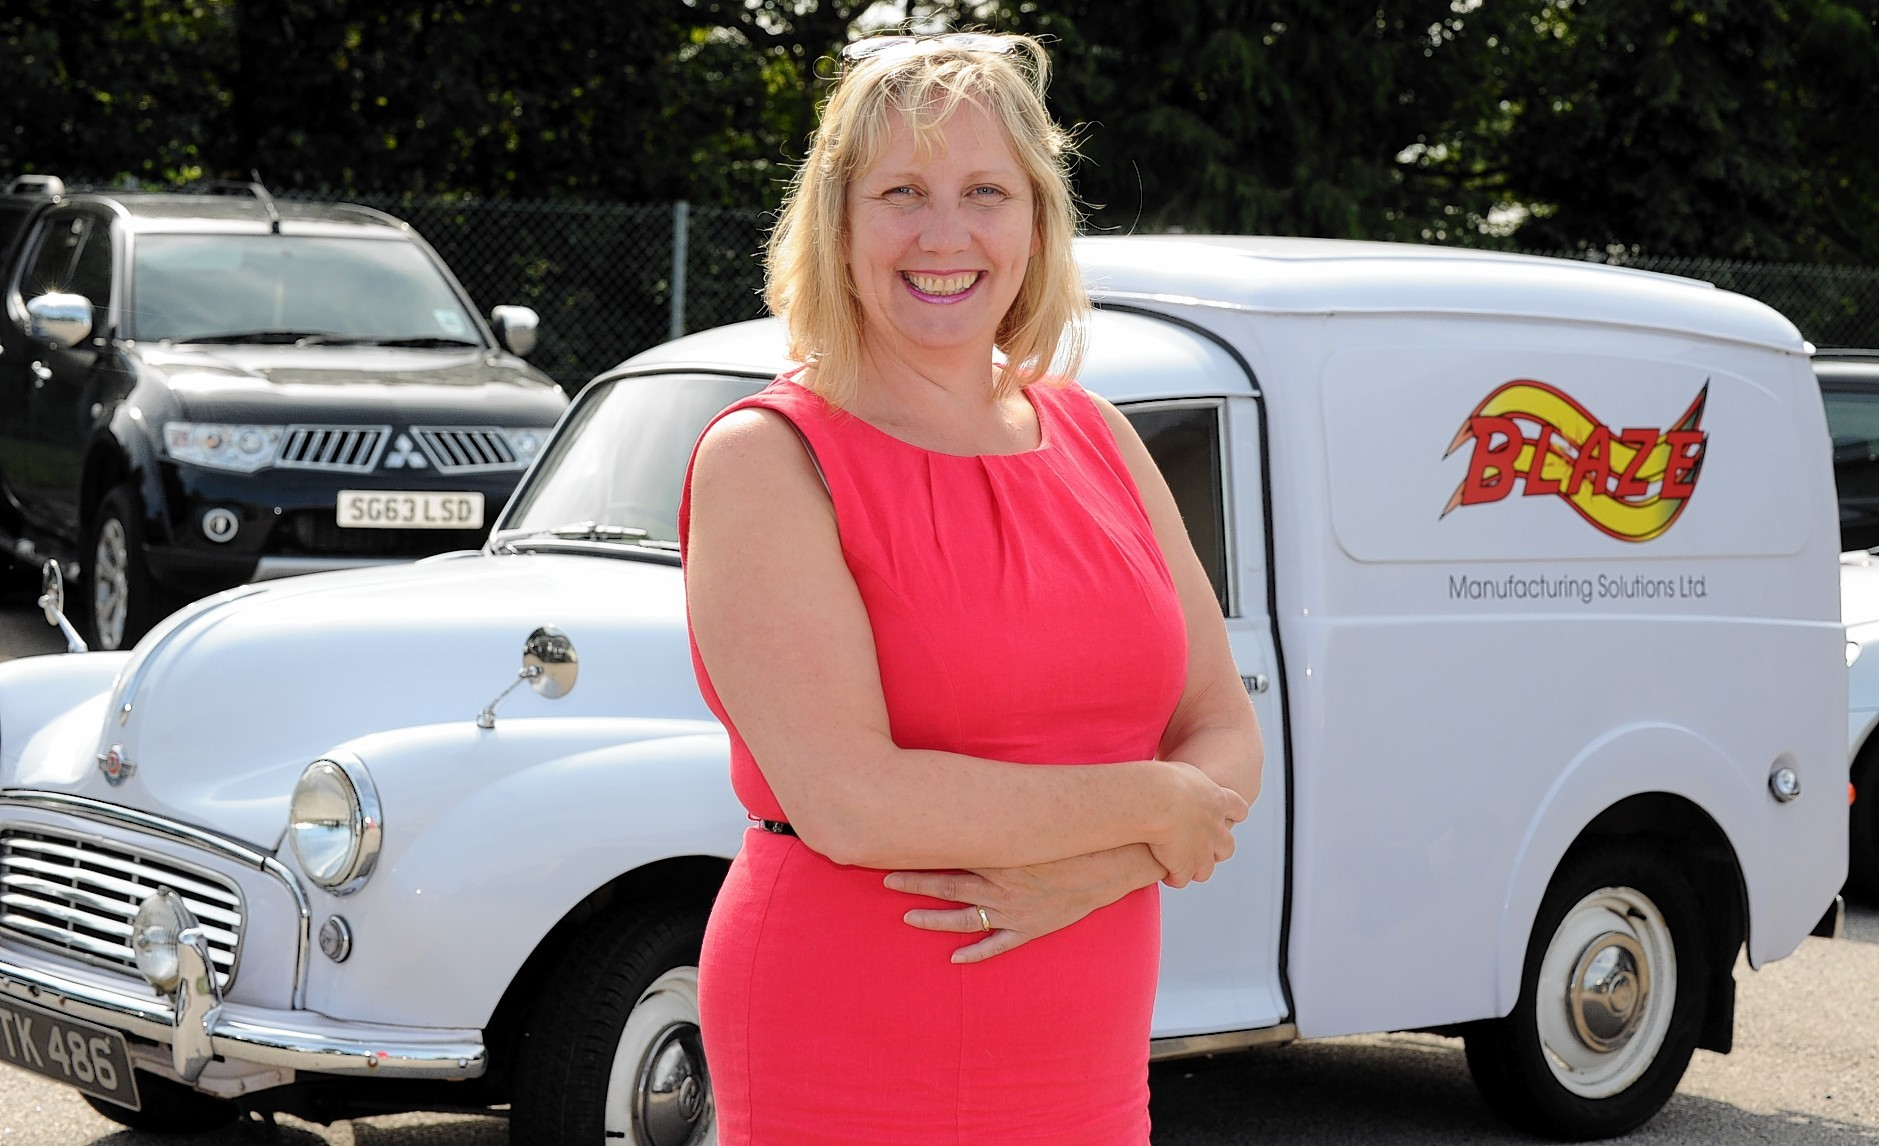 Director, Ann Johnson at Blaze Manufacturing Solutions, Laurencekirk. Picture by JIM IRVINE       28-7-14   .